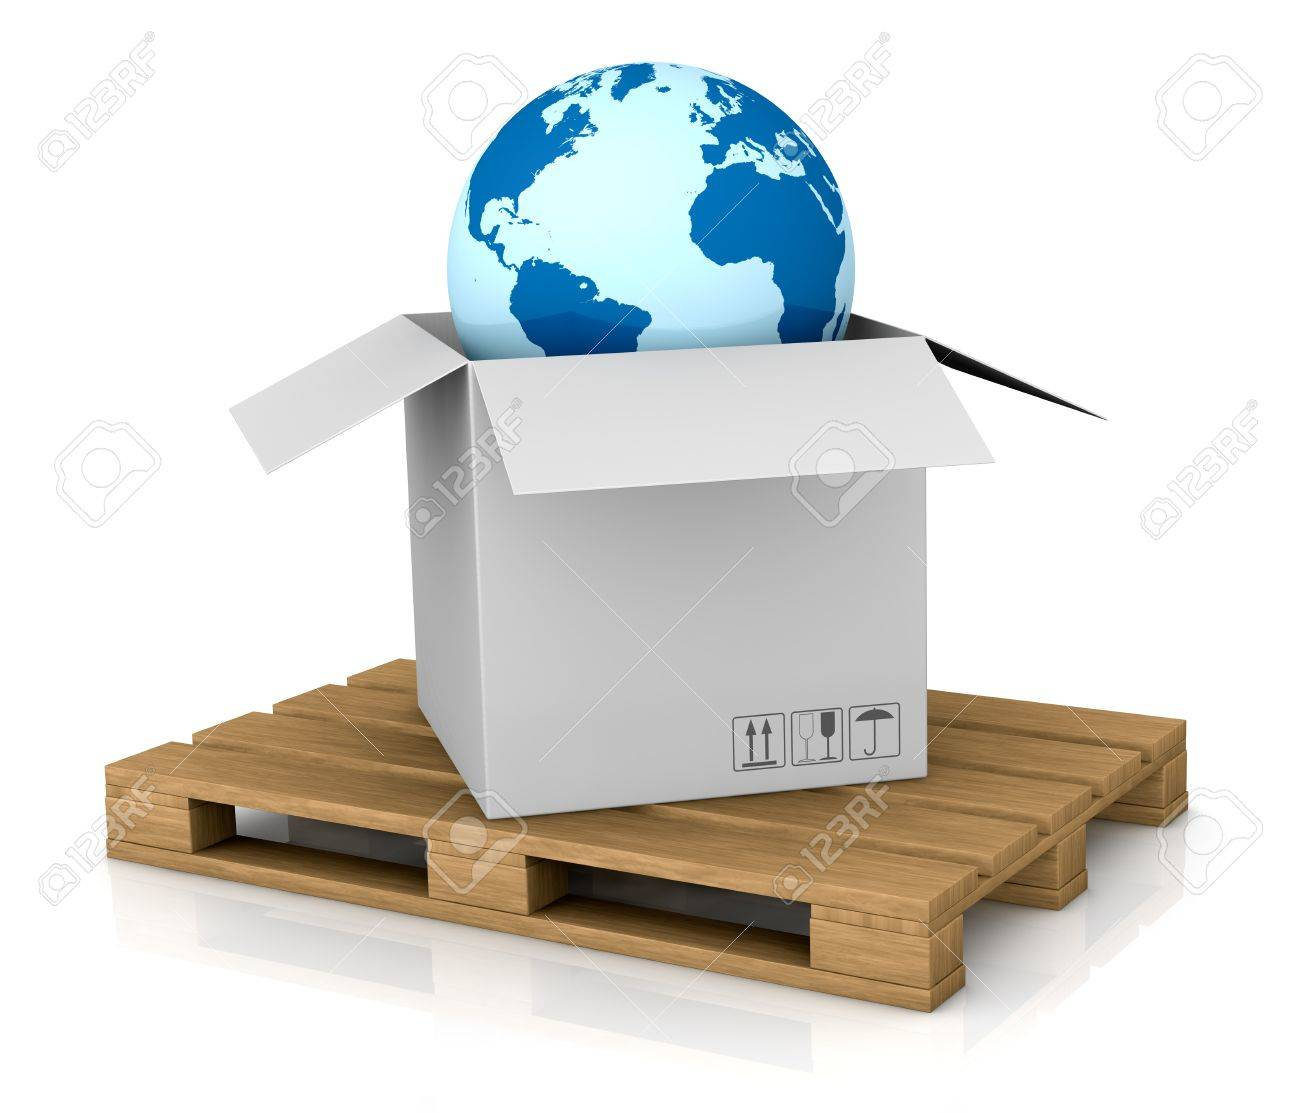 one world globe coming out of a carton box; concept of shipping everywhere (3d render) Stock Photo - 11505790